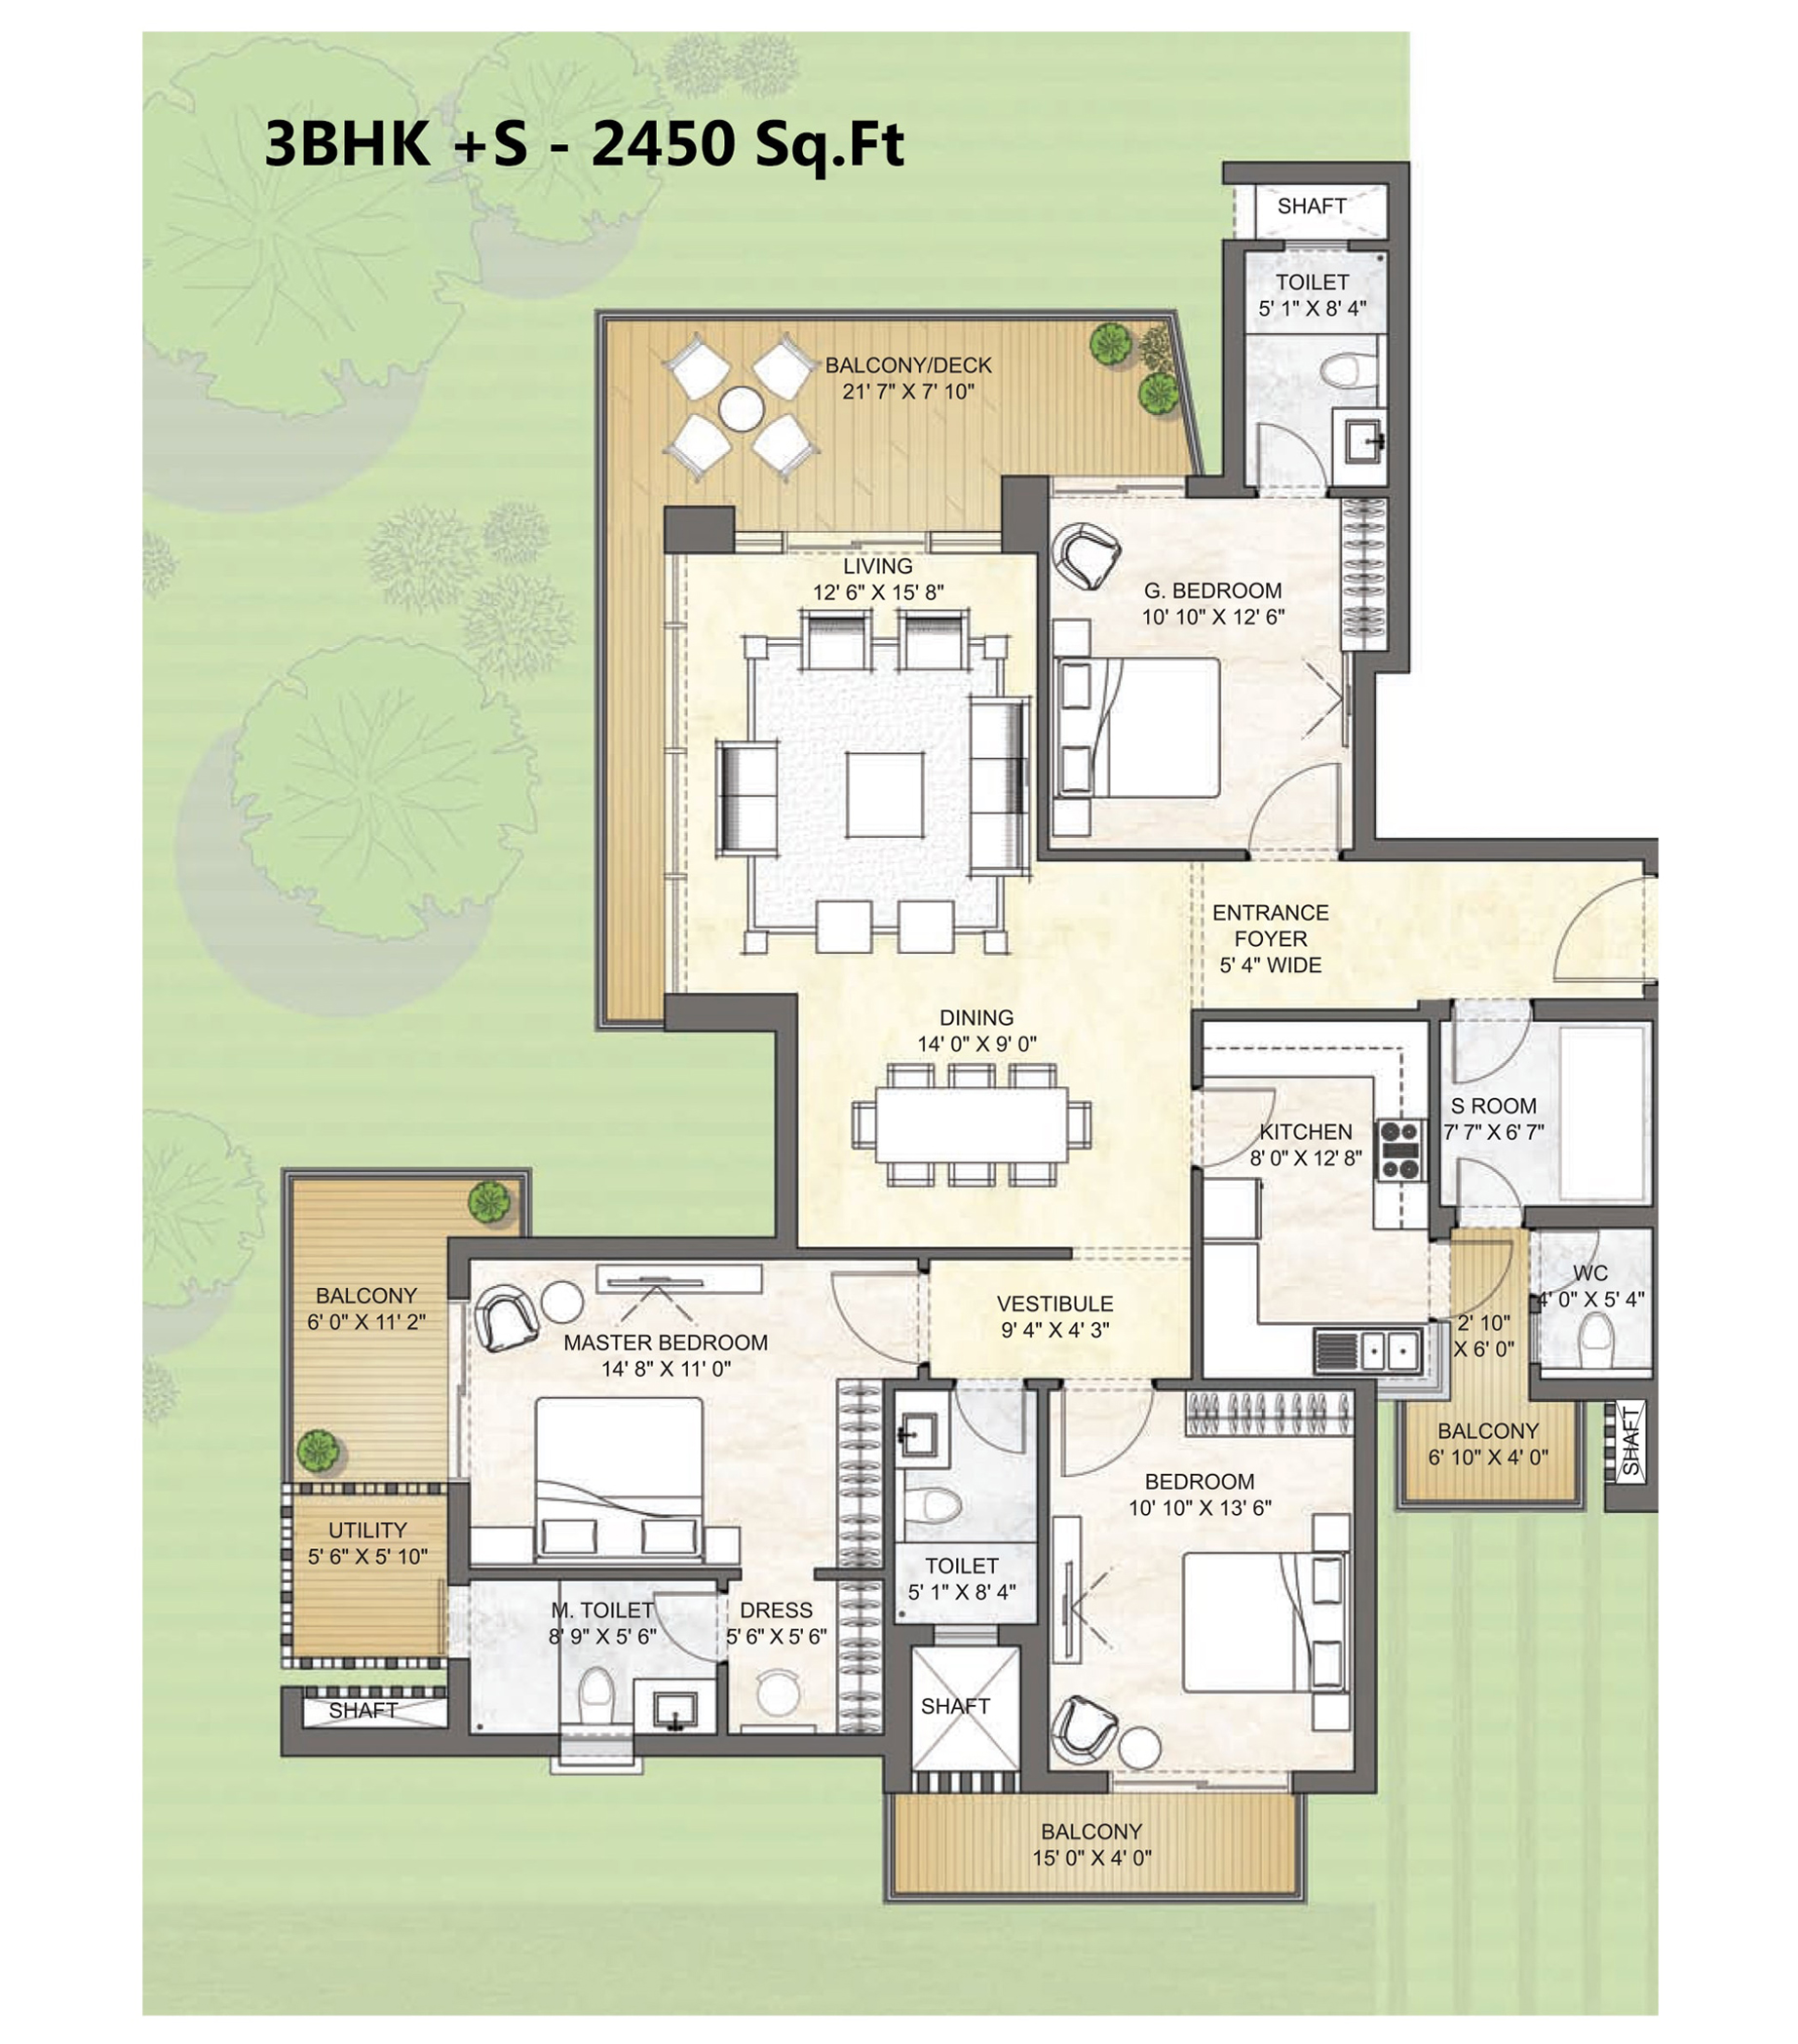 3BHK +S - 2450 Sq.Ft